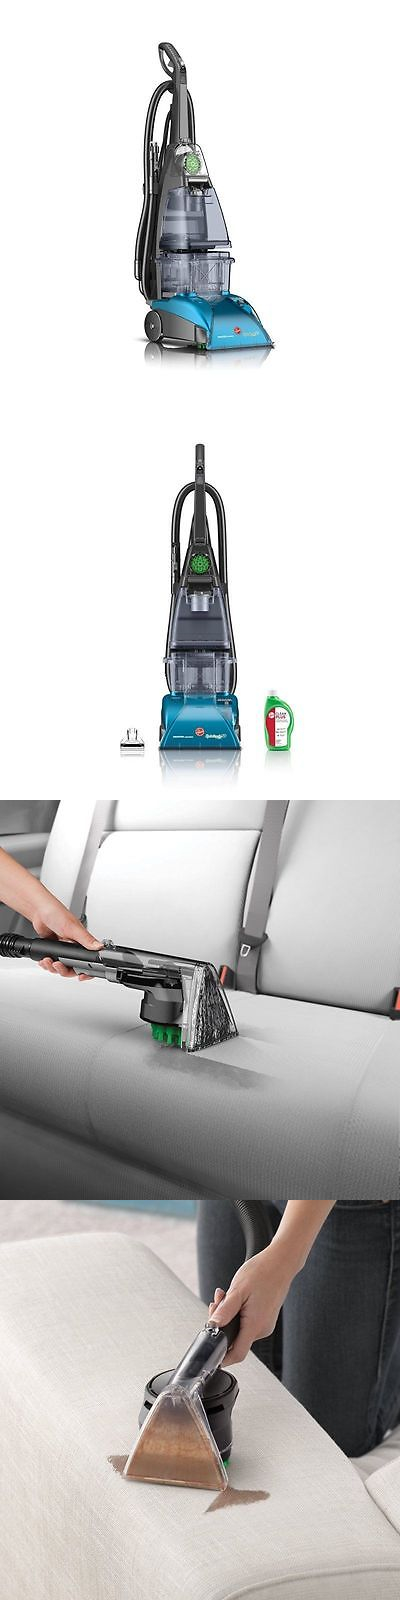 carpet shampooers carpet shampooer floor scrubber home cleaning heated washer upholstery cleaner u003e